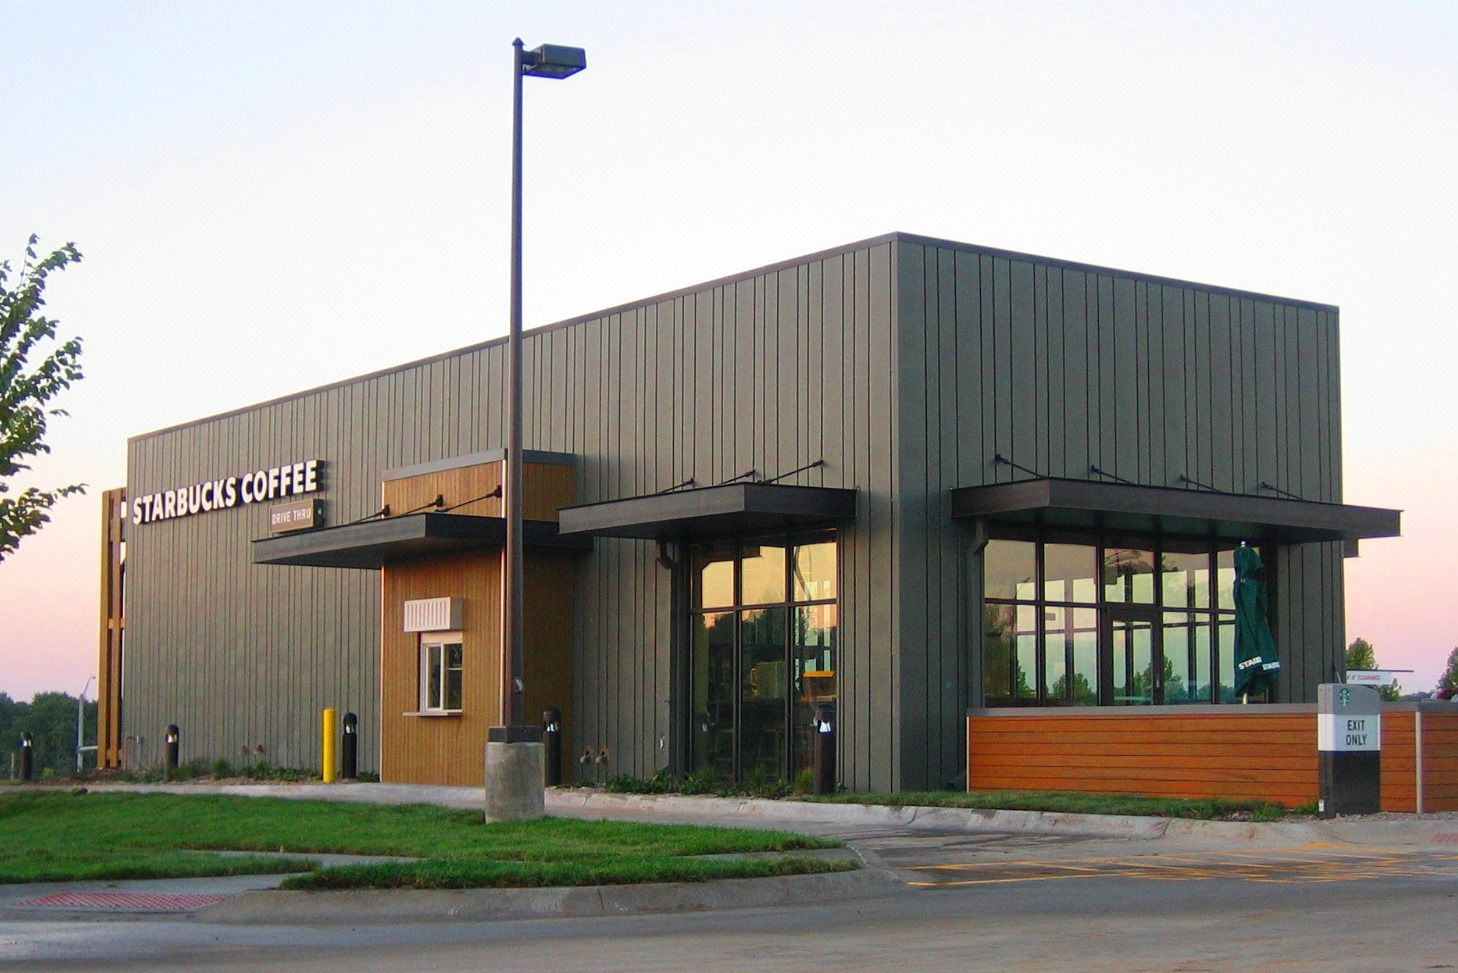 Starbucks coffee omaha ne rheinzink prepatina graphite - Exterior materials for buildings ...